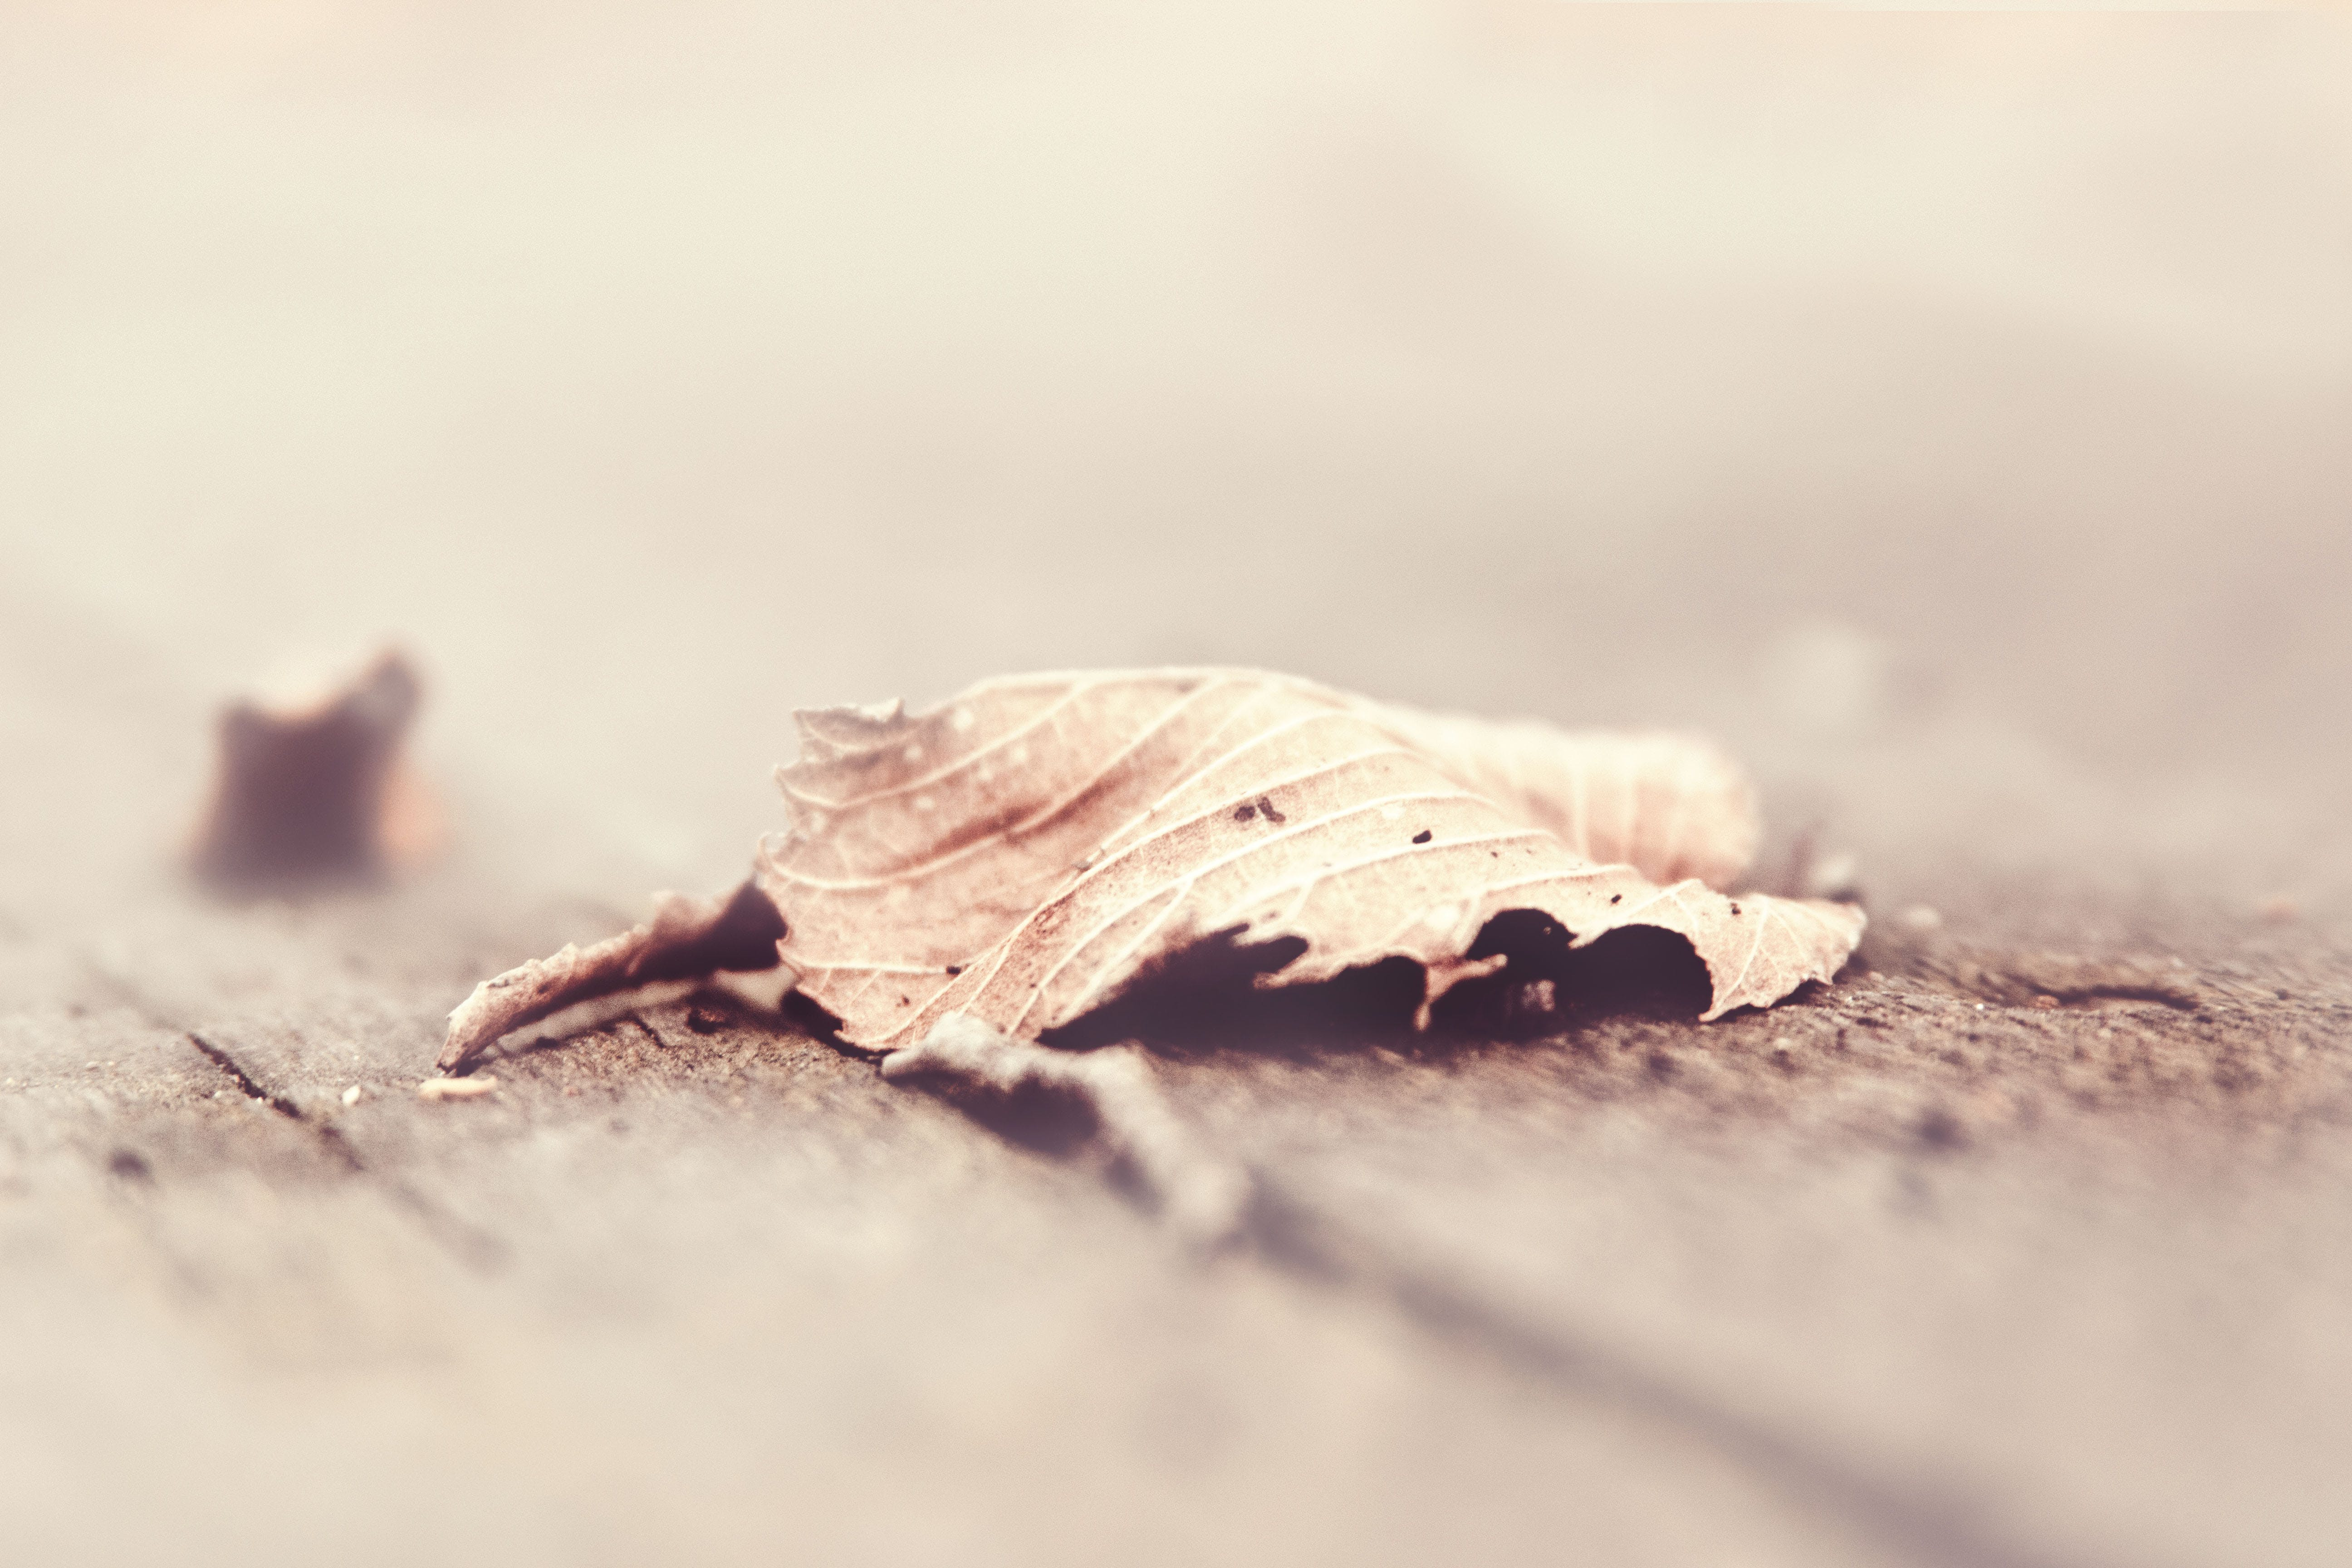 Free stock photo of nature, leaf, fall, outdoors